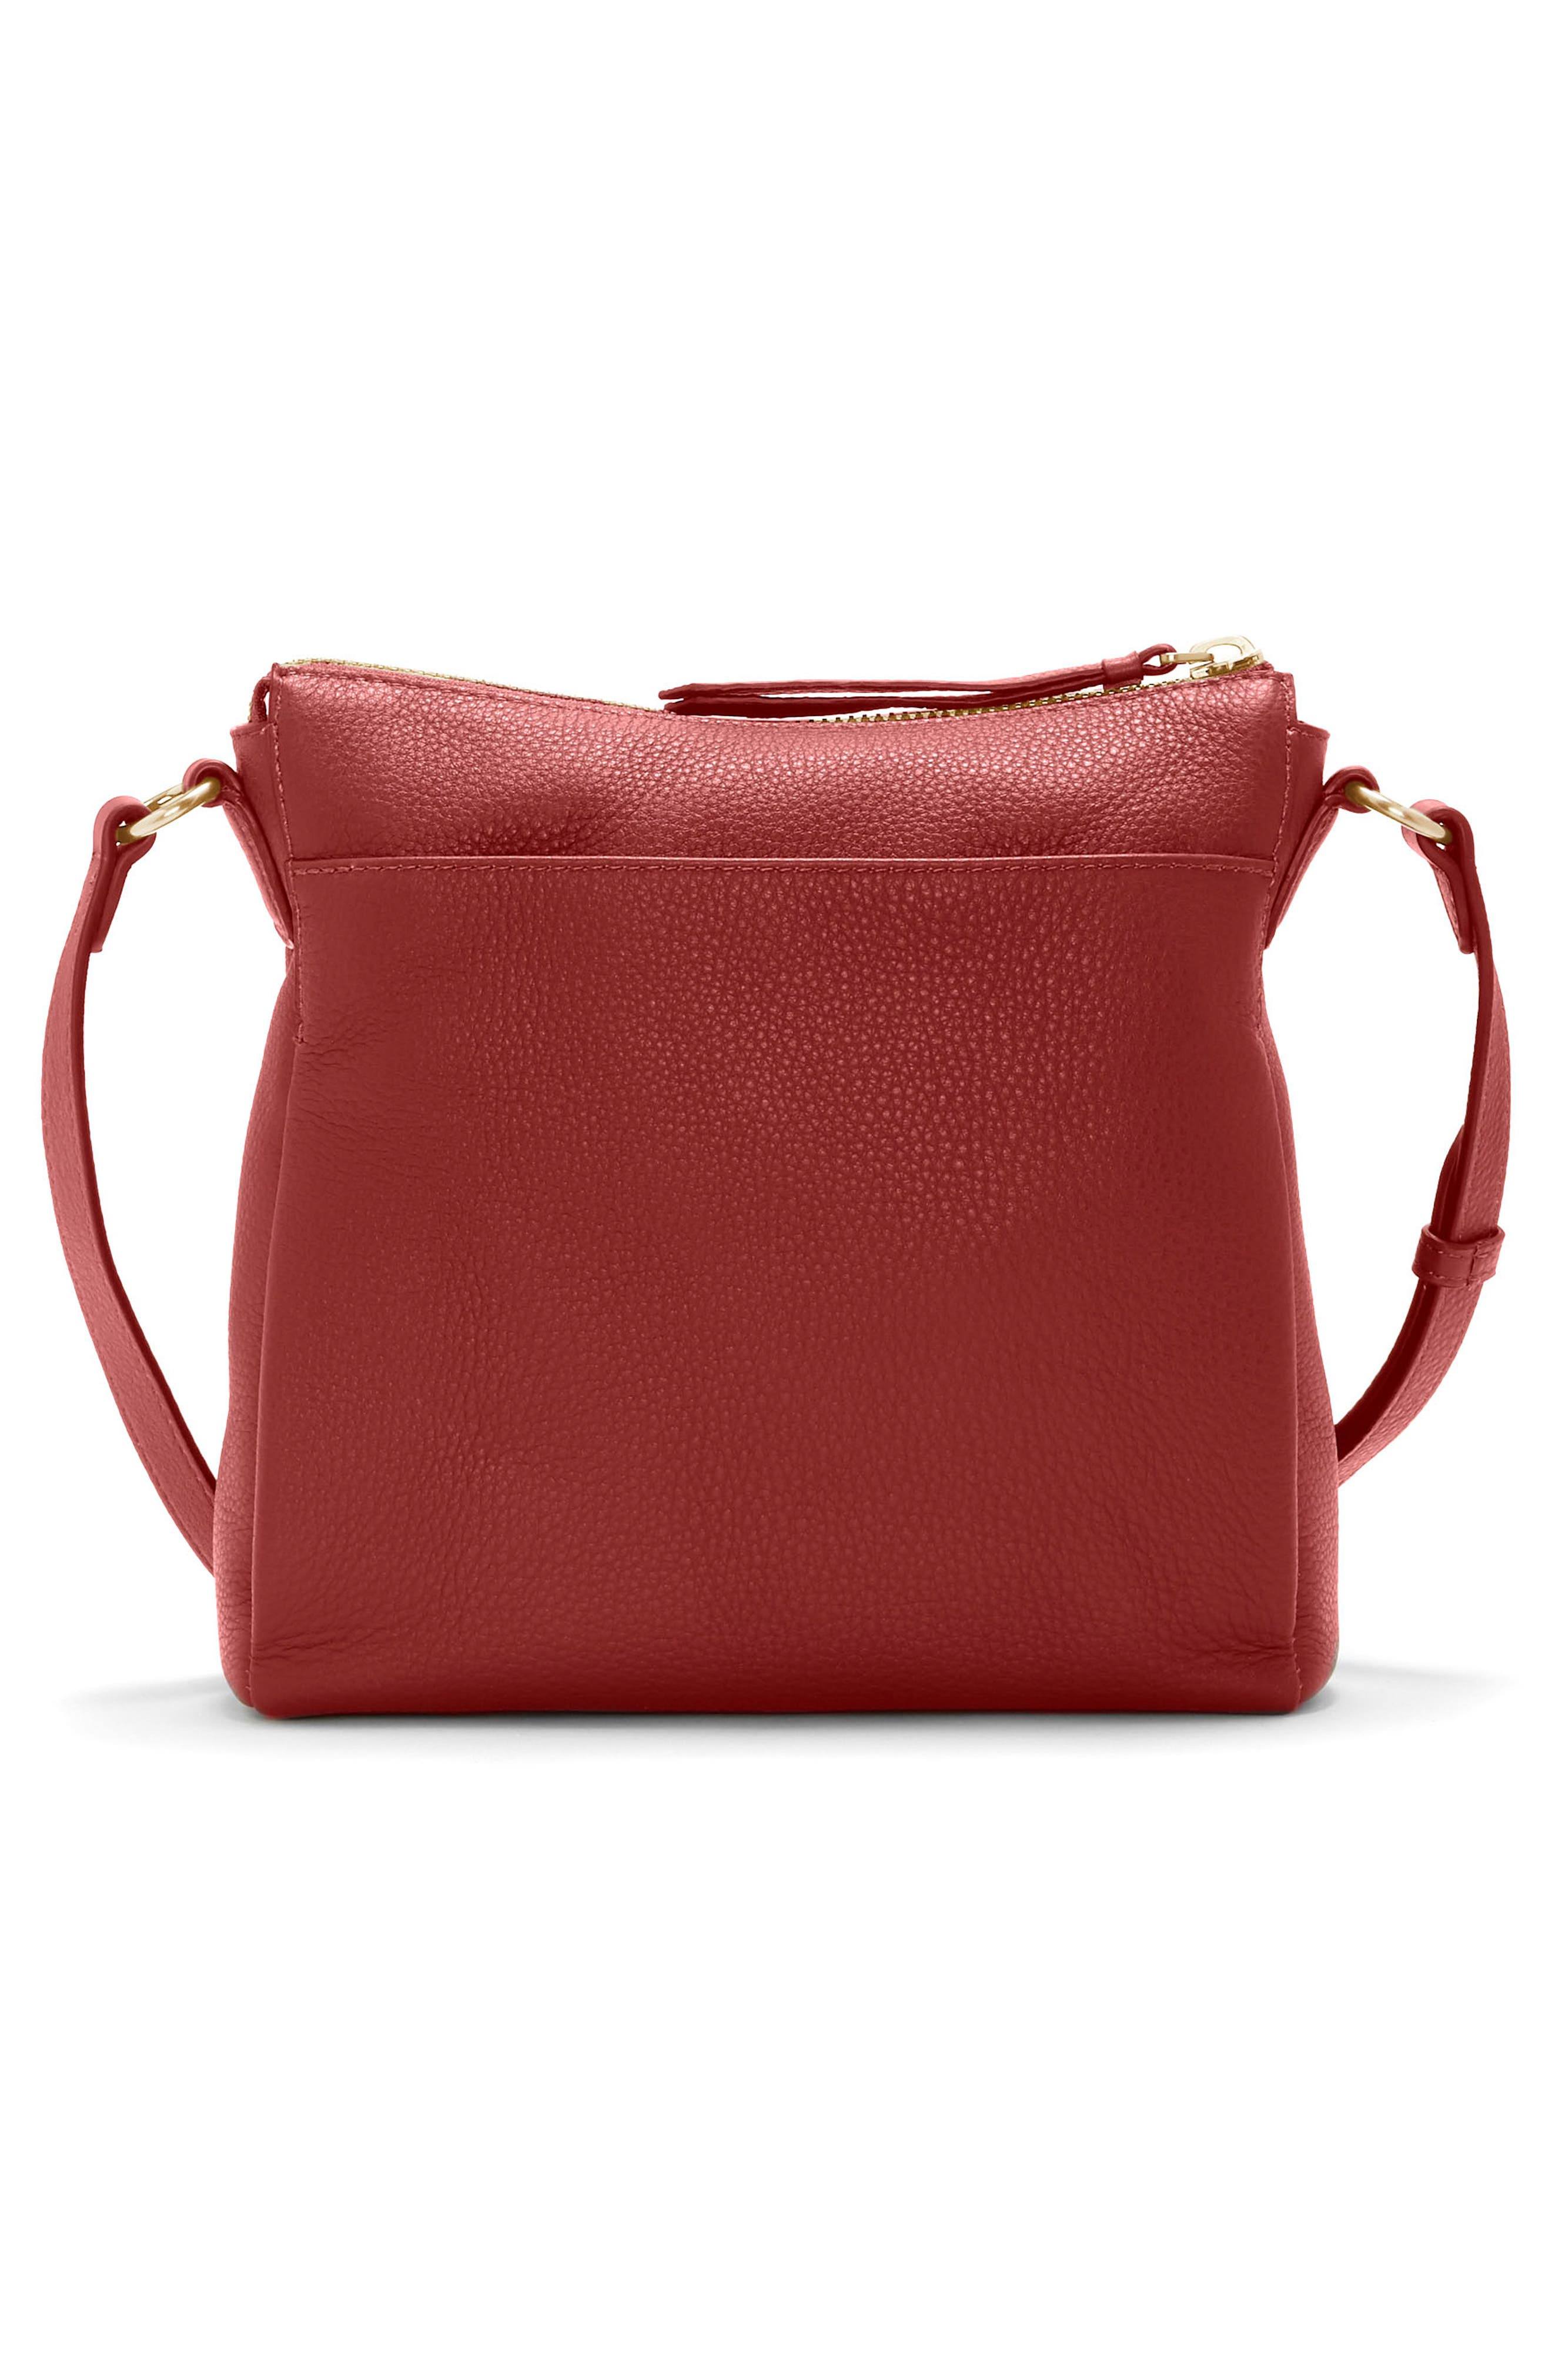 Staja Leather Crossbody Bag,                             Alternate thumbnail 2, color,                             PEPPER BERRY